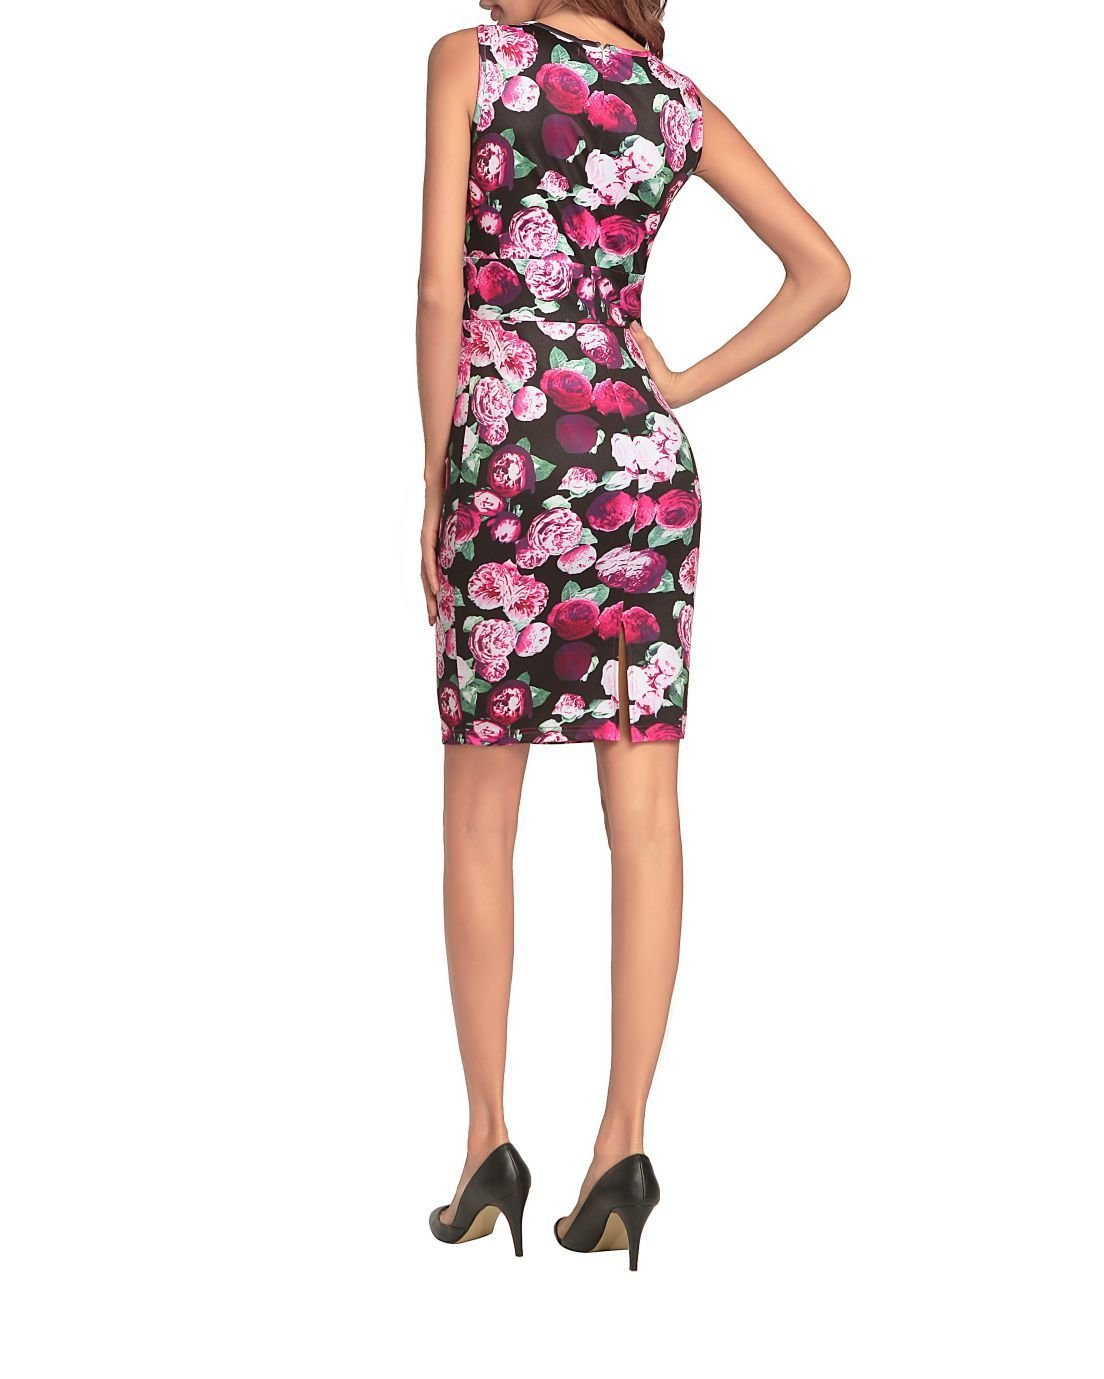 Sleeveless Floral Dress for Work or Play